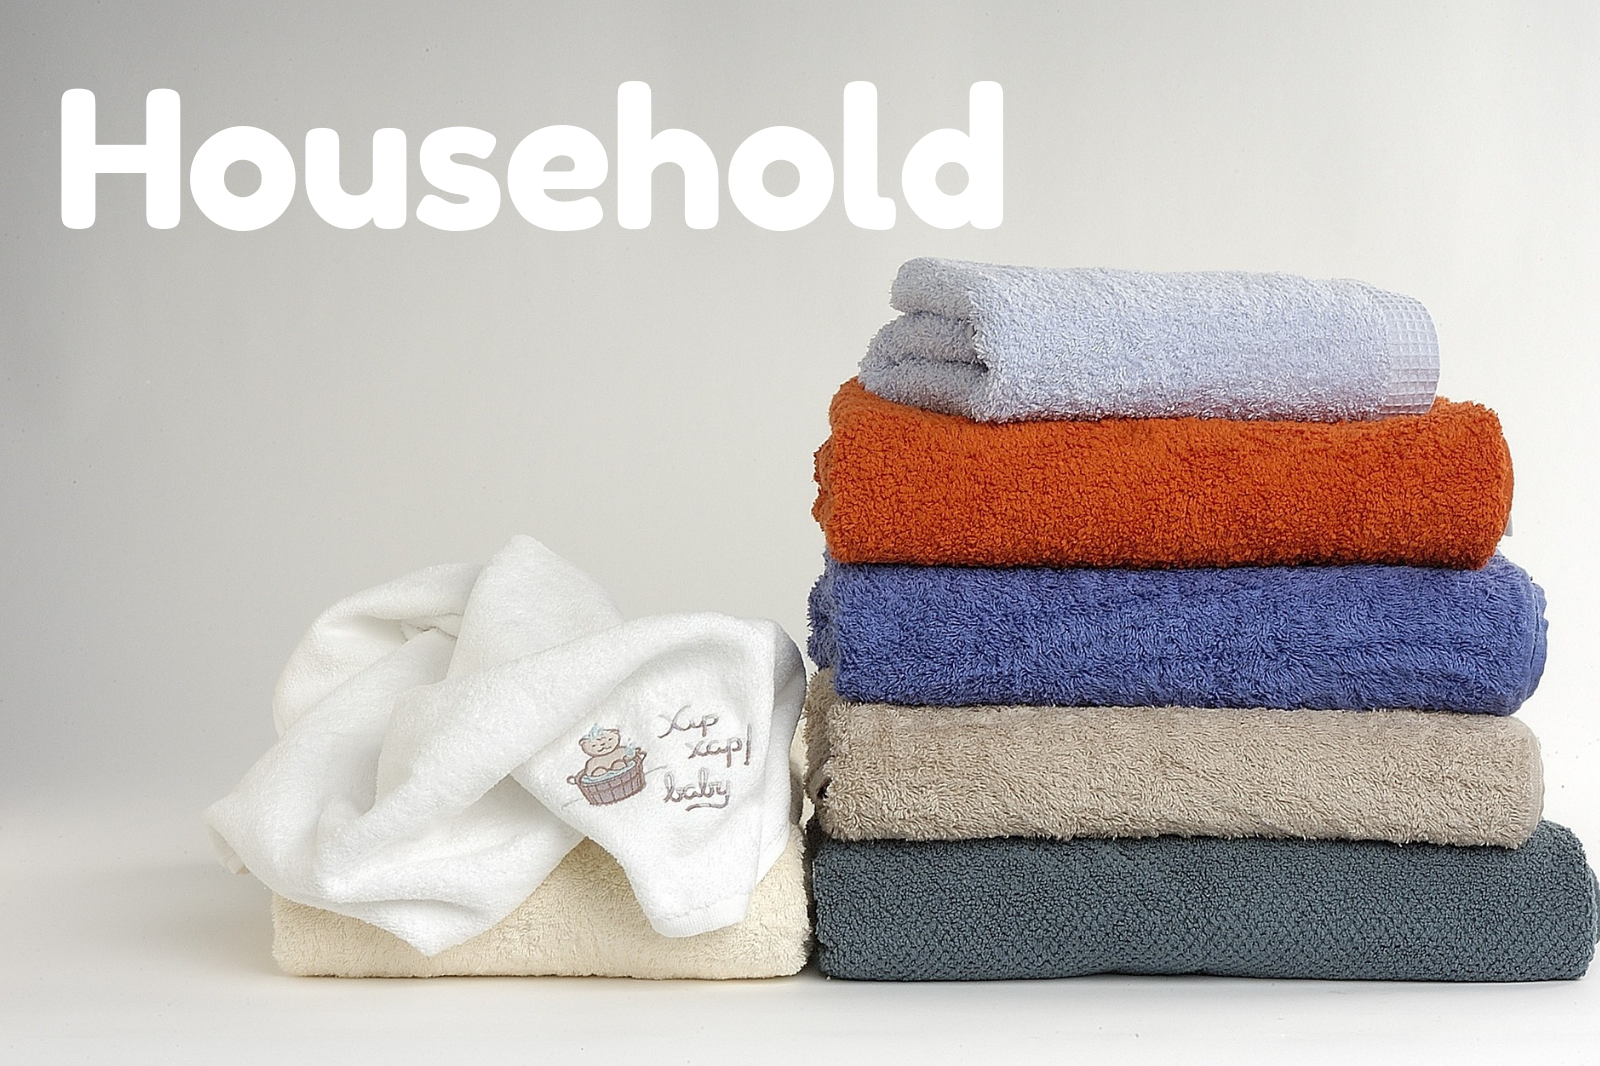 household accessories dry cleaning and laundry